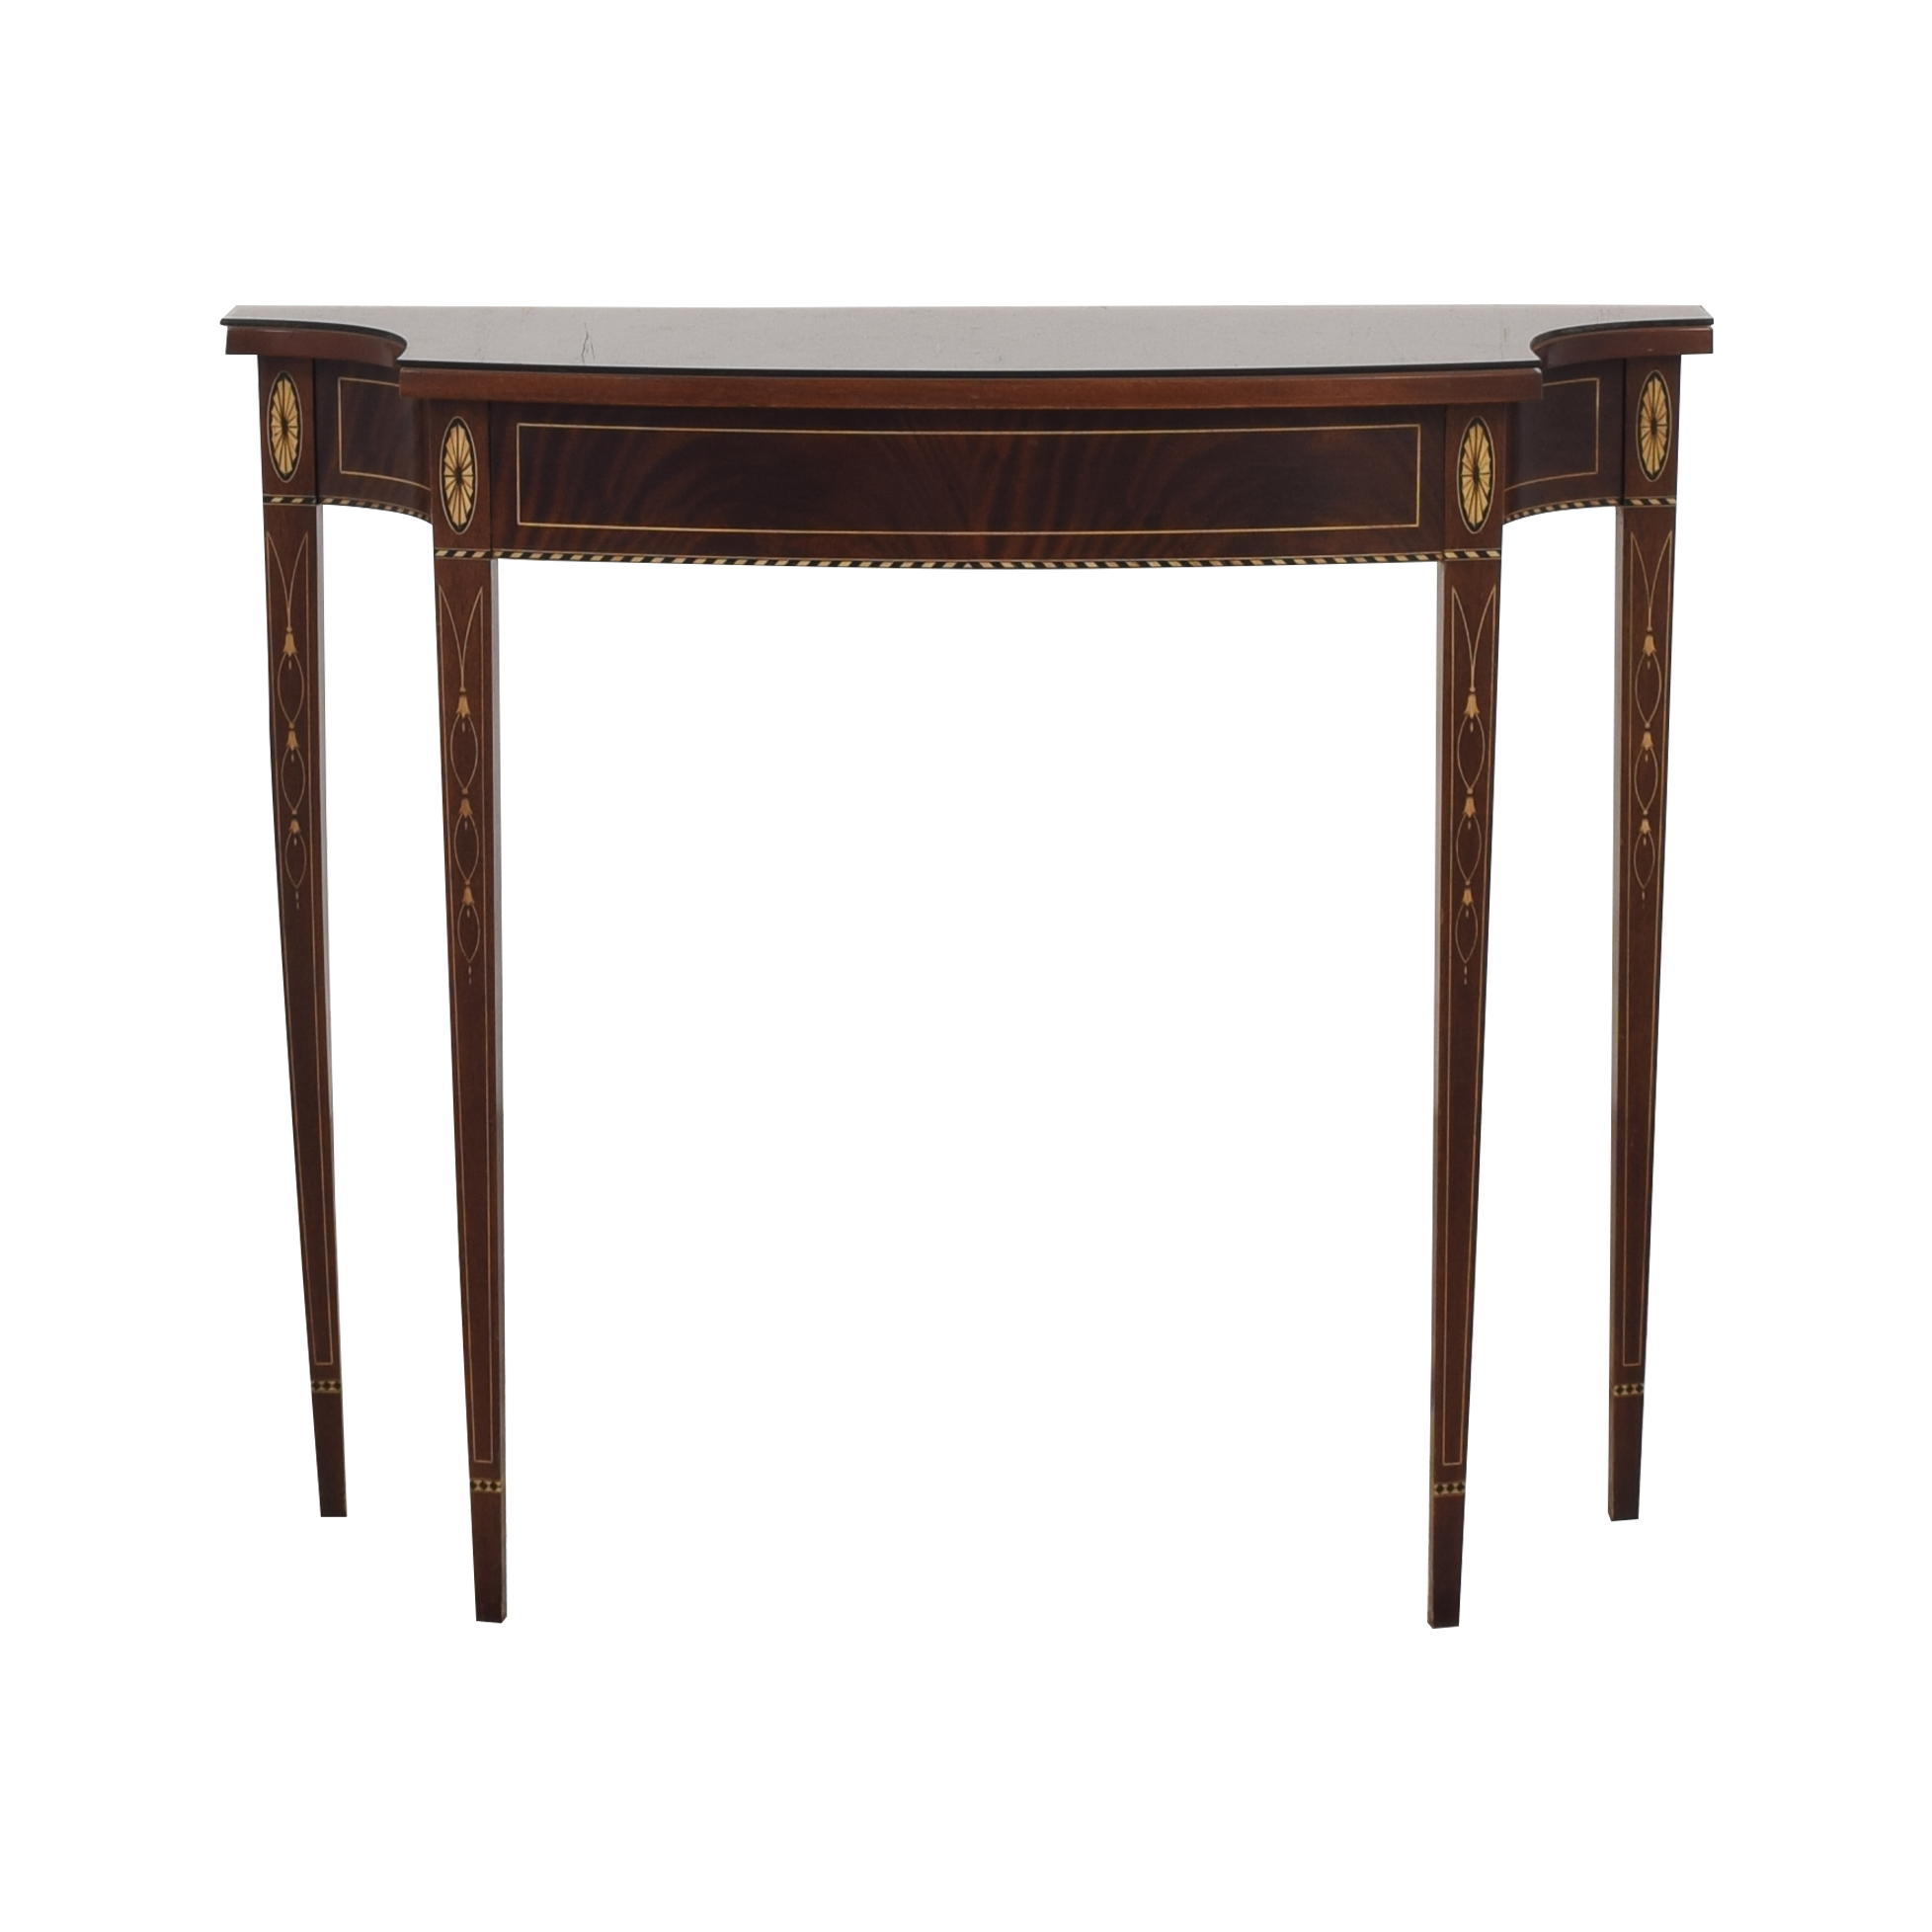 Stickley Furniture Stickley Furniture Entry Table nyc